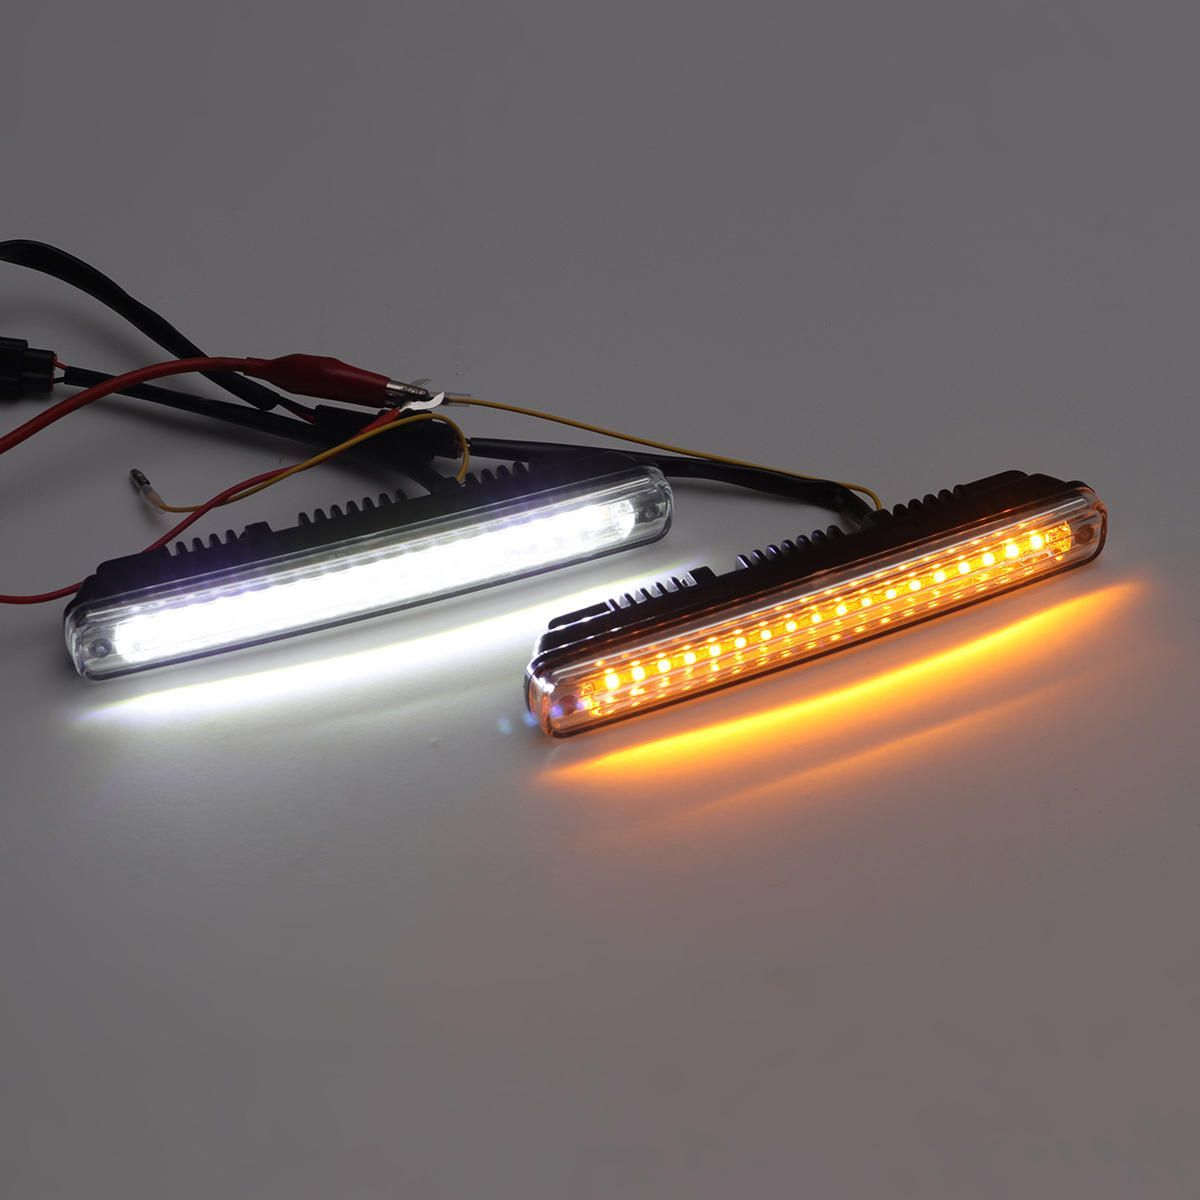 36 Led Dual Color Car Daytime Running Lights Drl Lamps Universal White Amber Car Lights From Automobiles Motorcycles On Banggood Com Running Lights Car Led Lights Car Lights